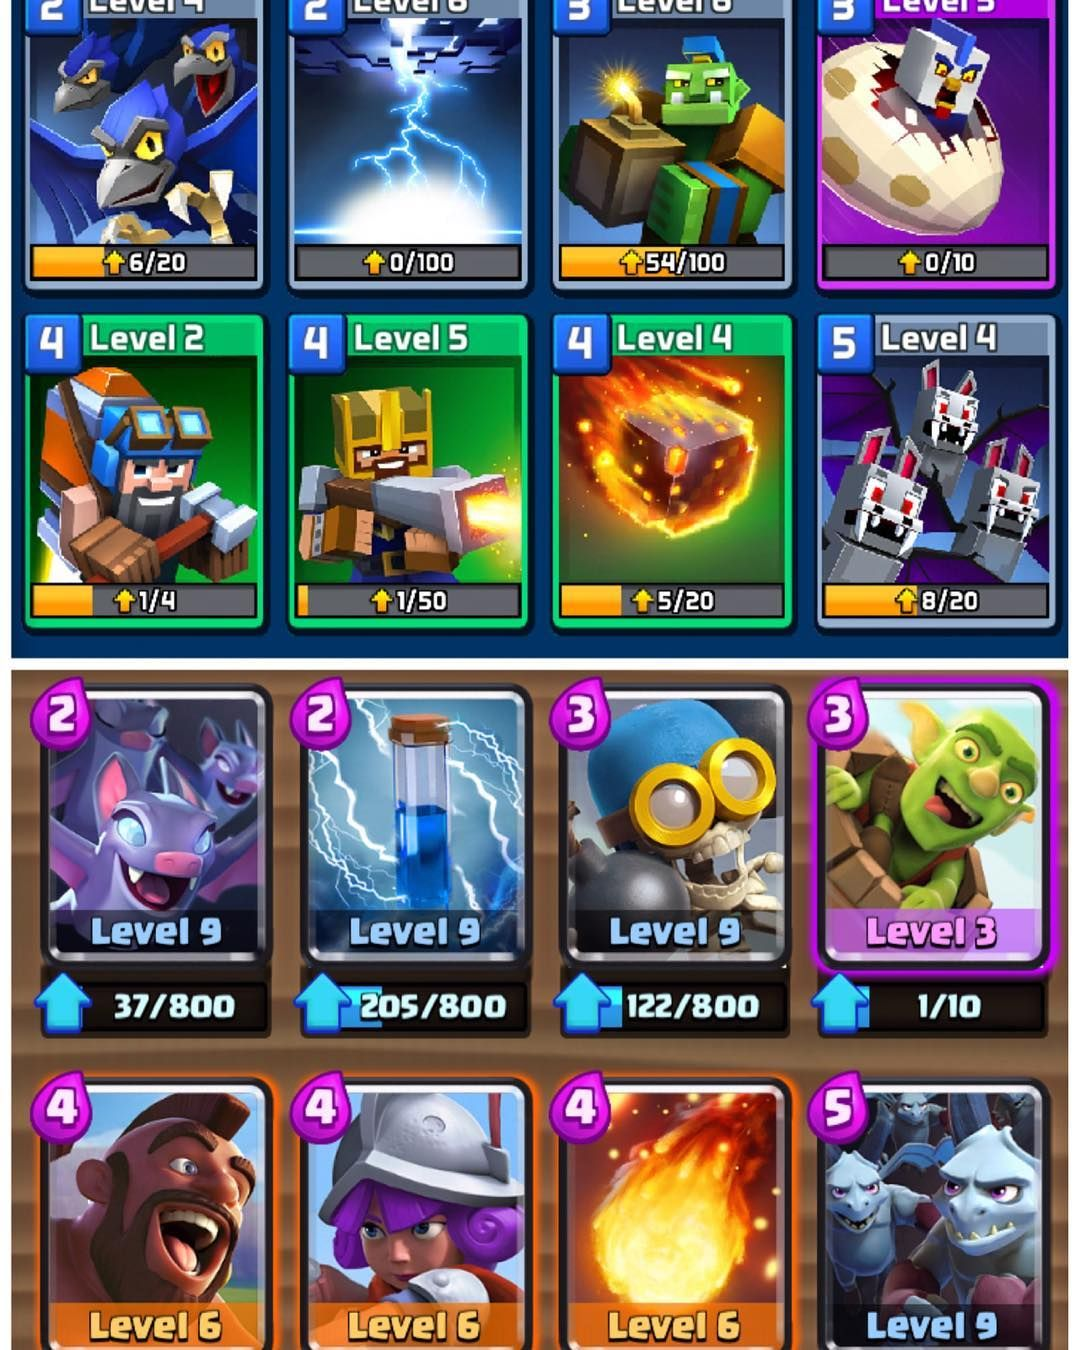 Hey Guys I Ve Recently Recorded A Video Comparing A Deck On Clash Royale To Craft Royale It S Funny That Both Decks Clash Royale Deck Youtube Gamer Short Film